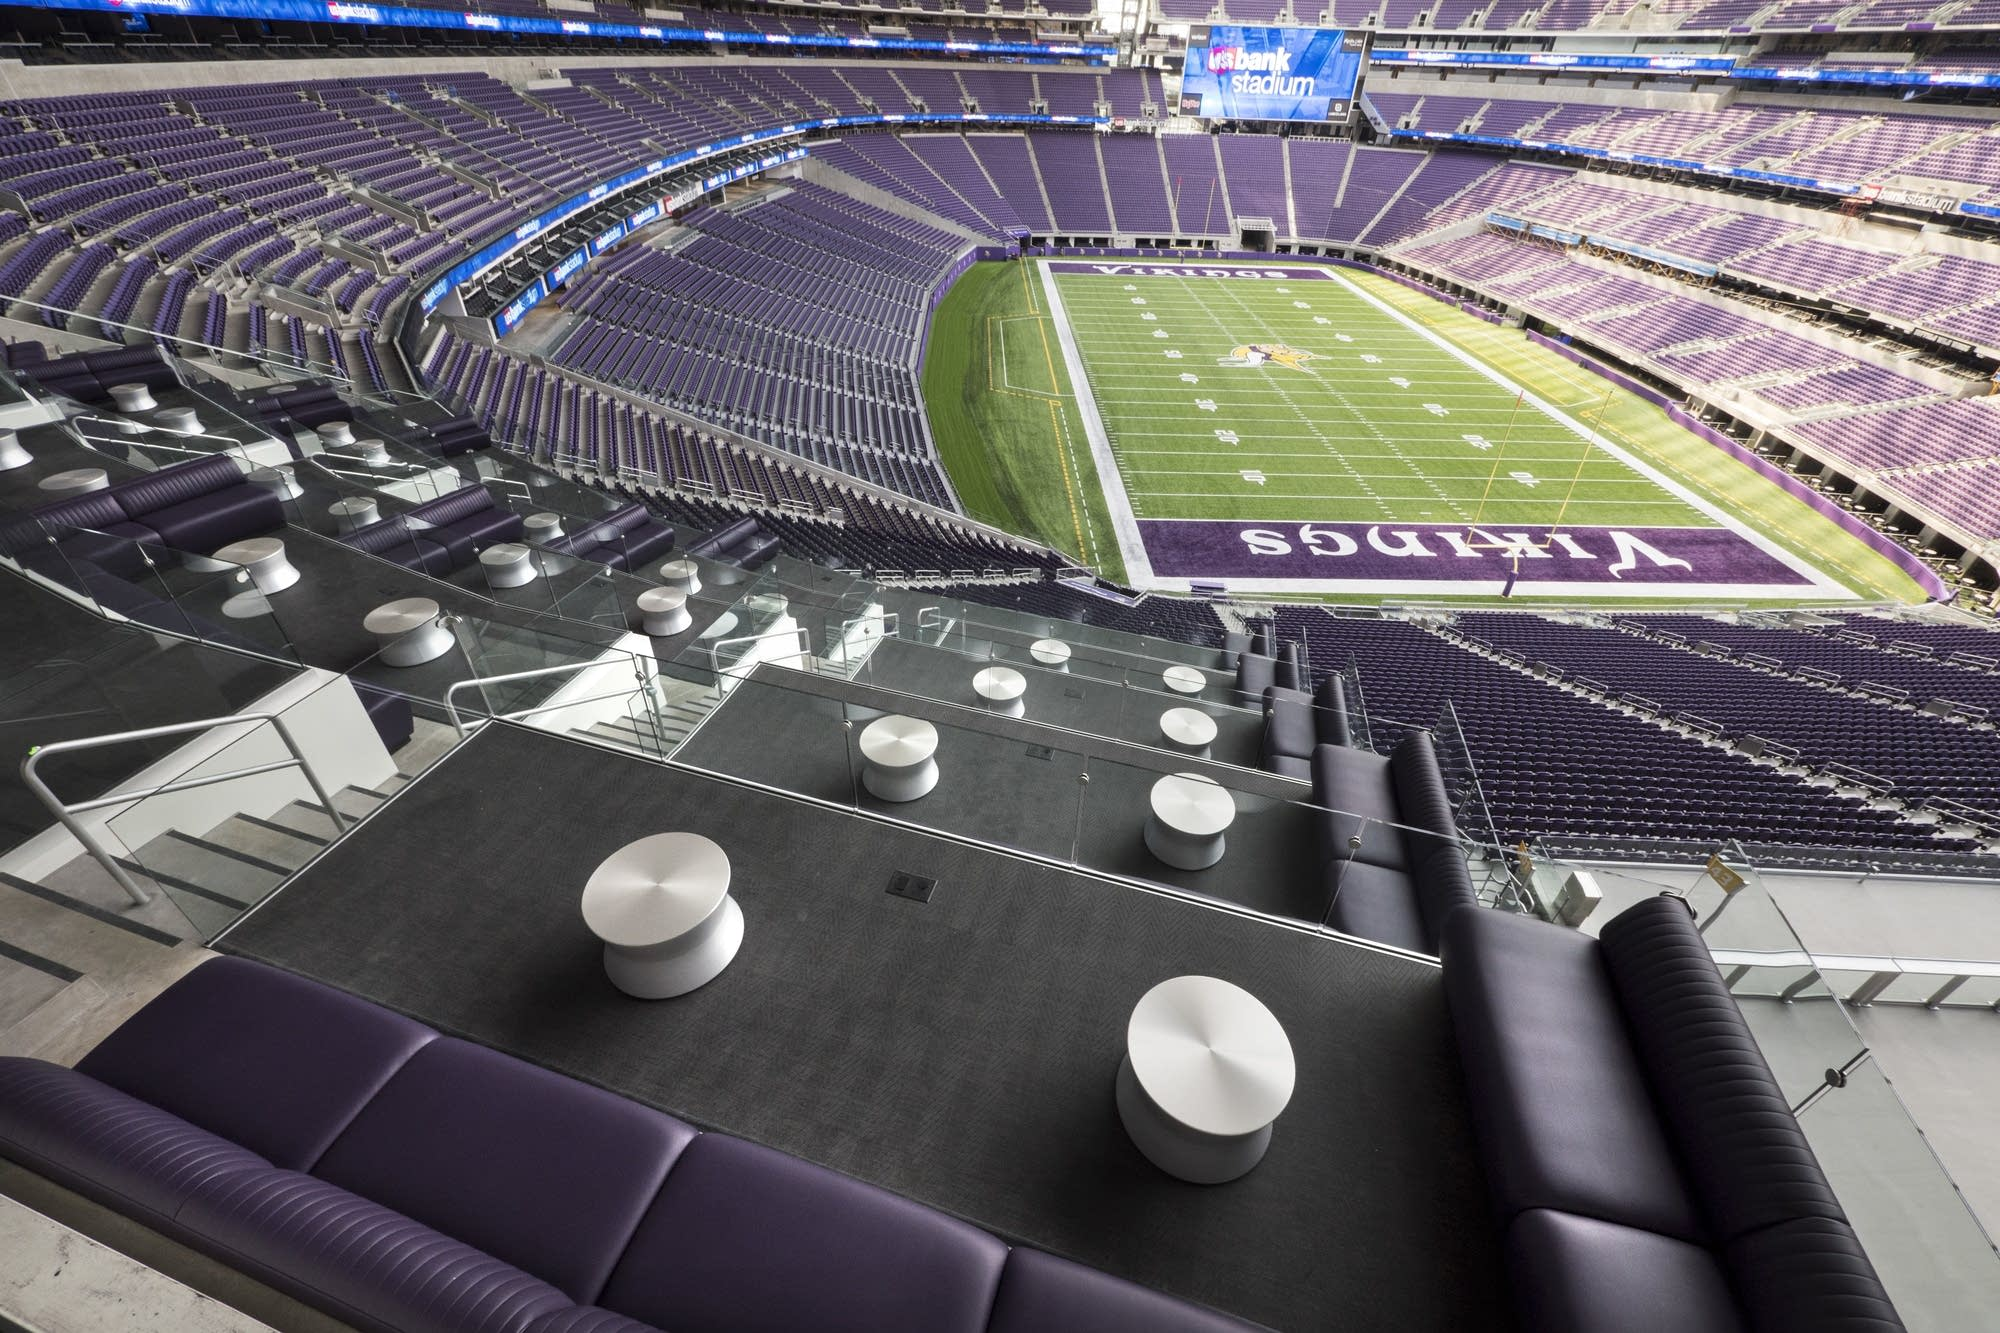 Lounge areas in the seats